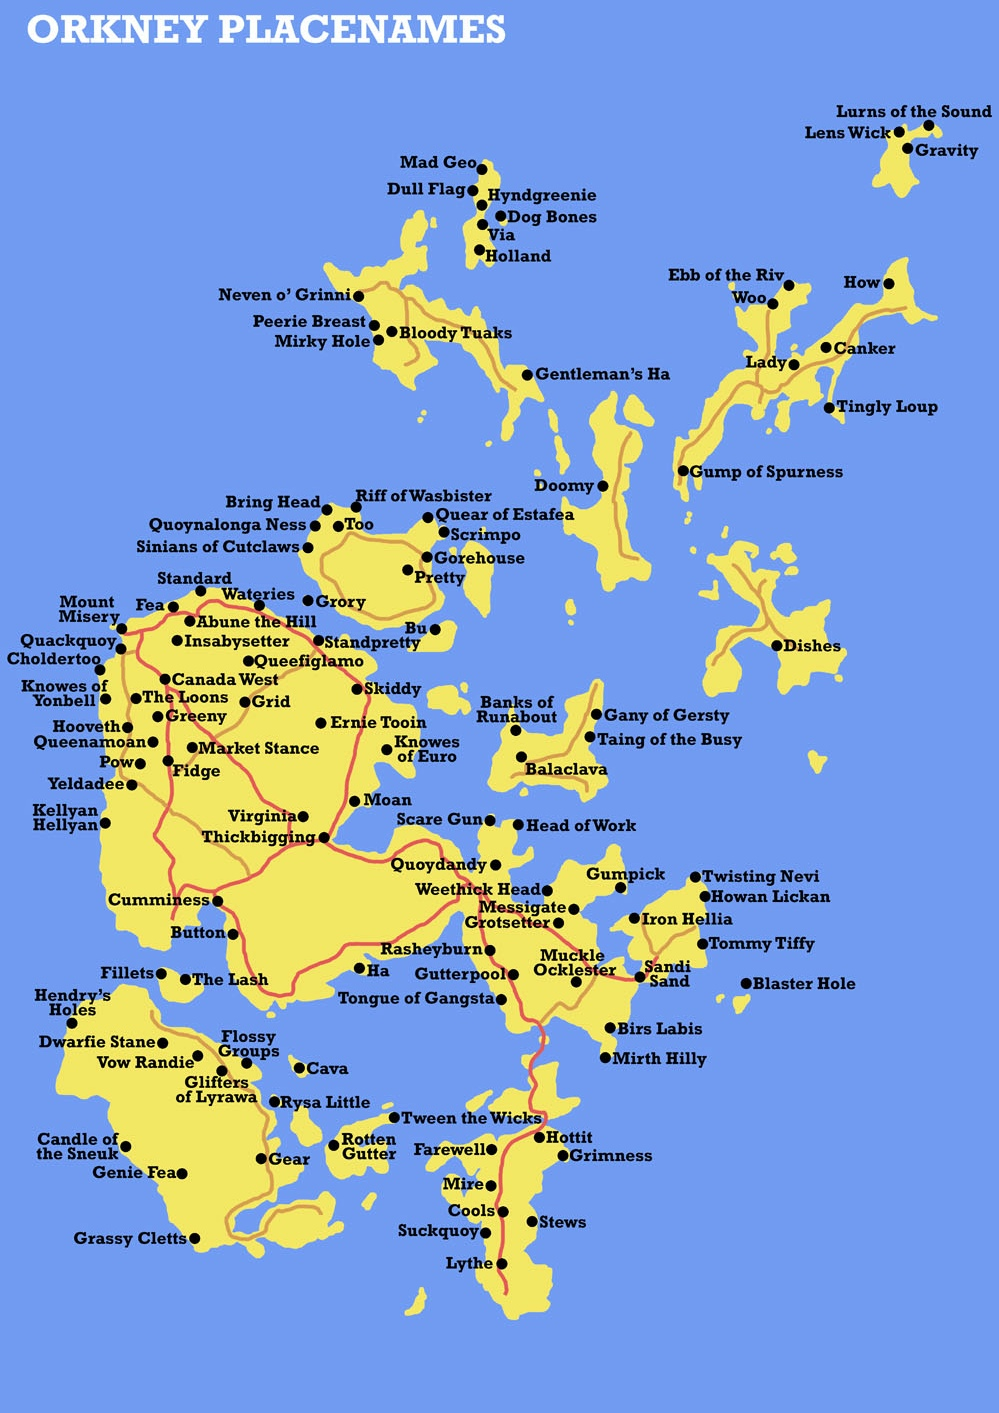 Orkney place names